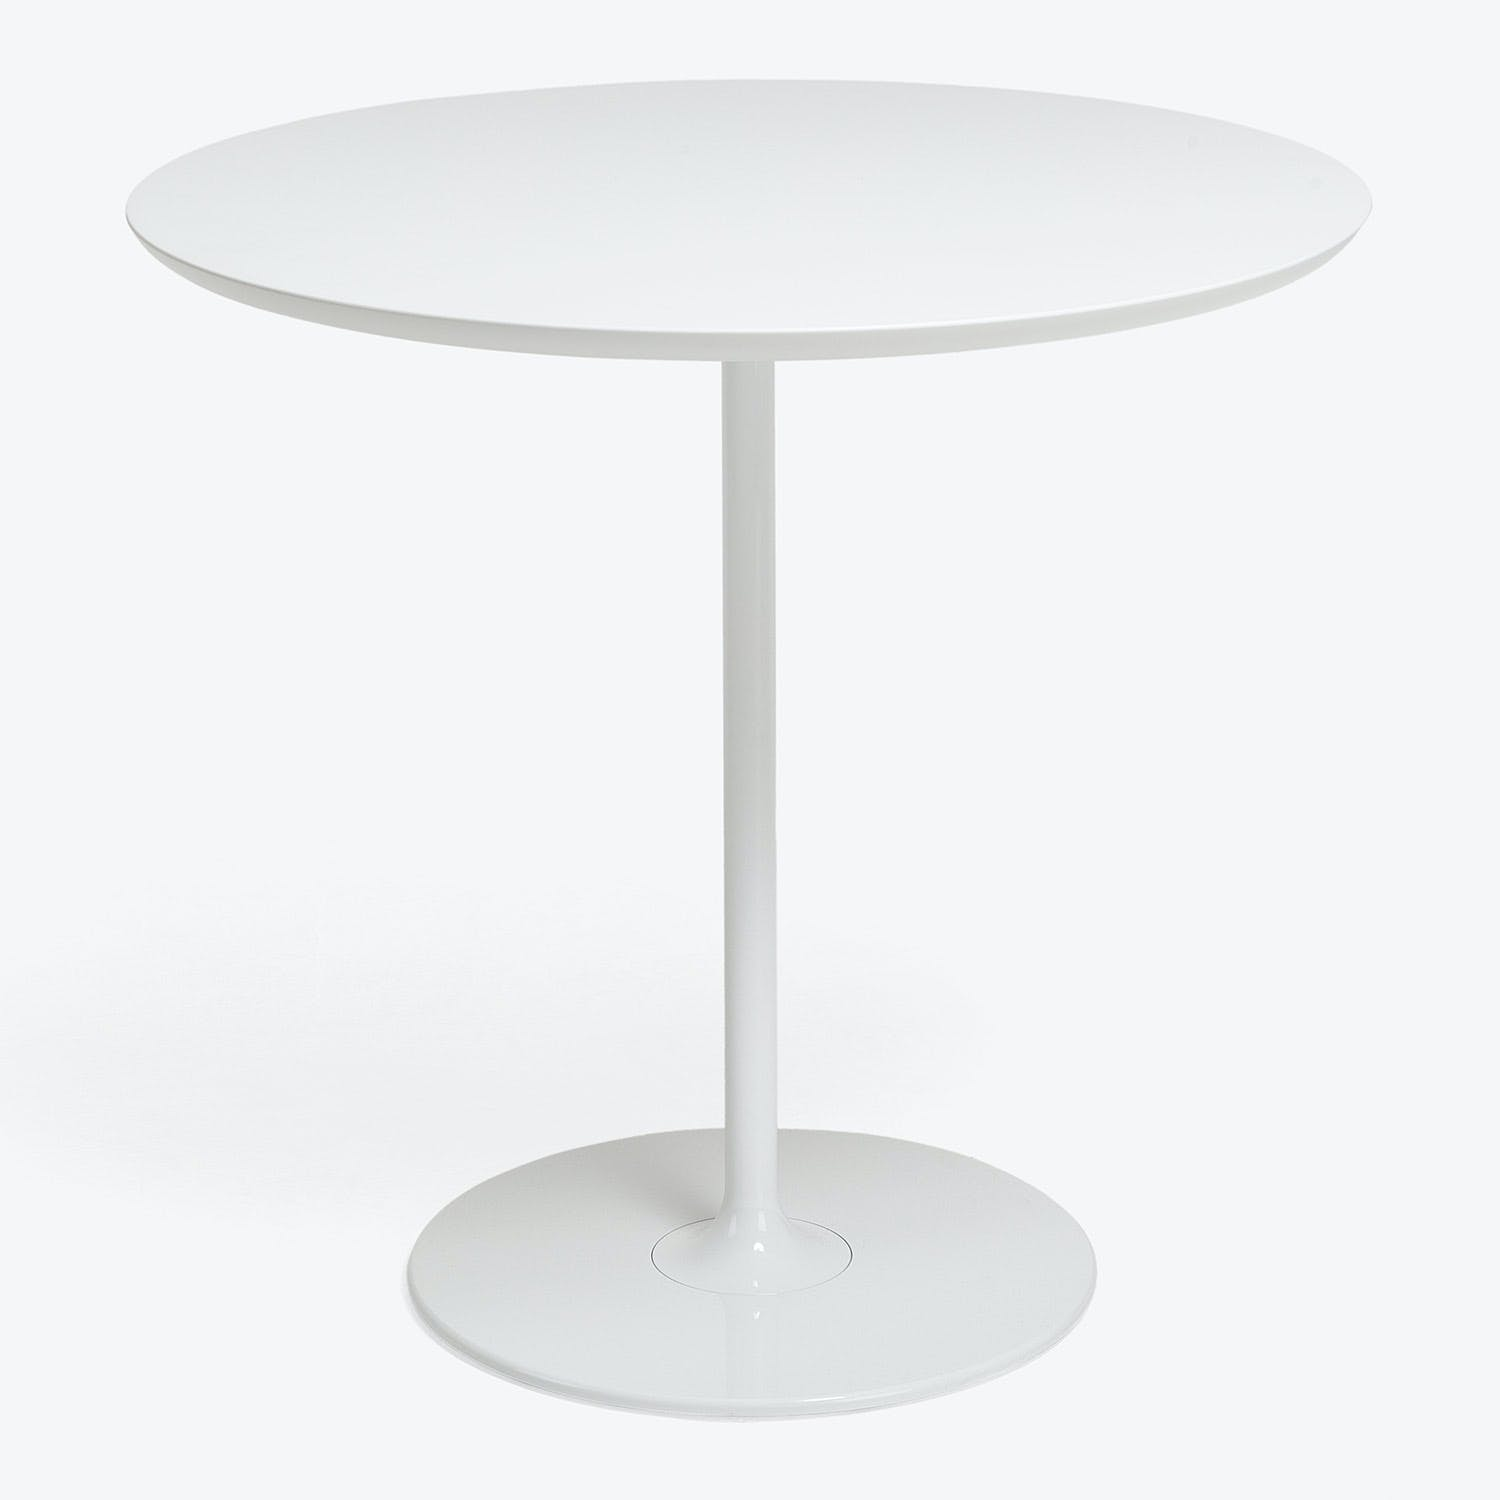 Product Image - Dizzie Round Dining Table